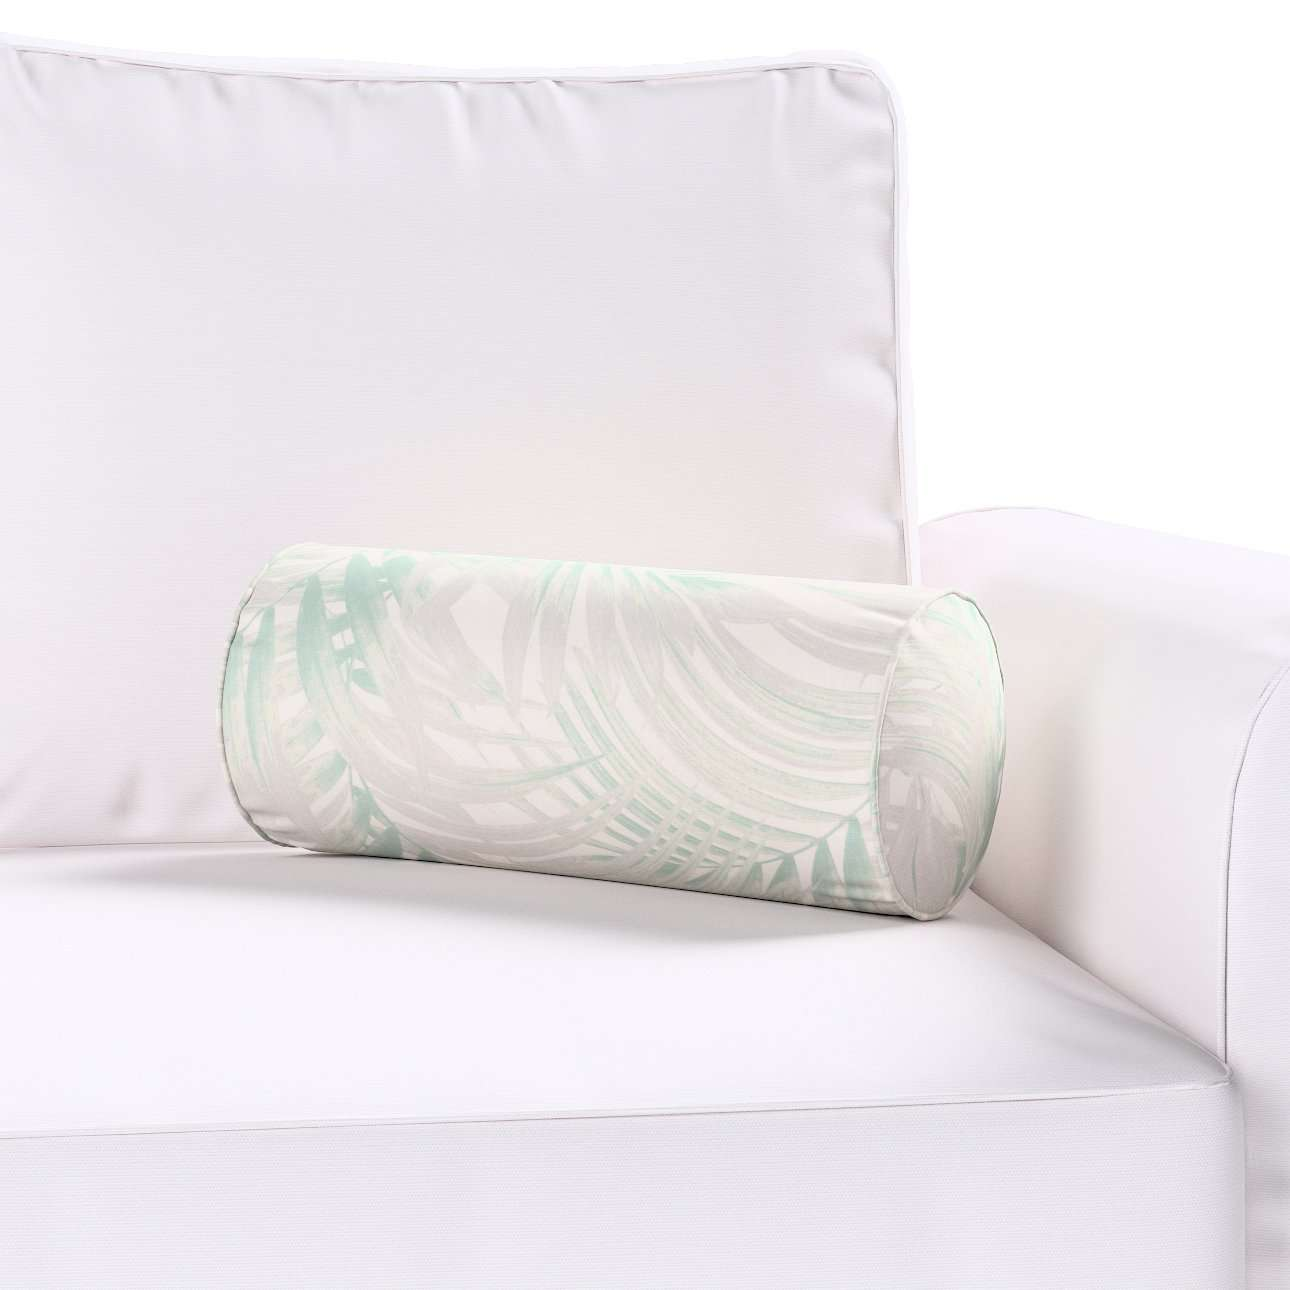 Bolster cushion in collection Gardenia, fabric: 142-15